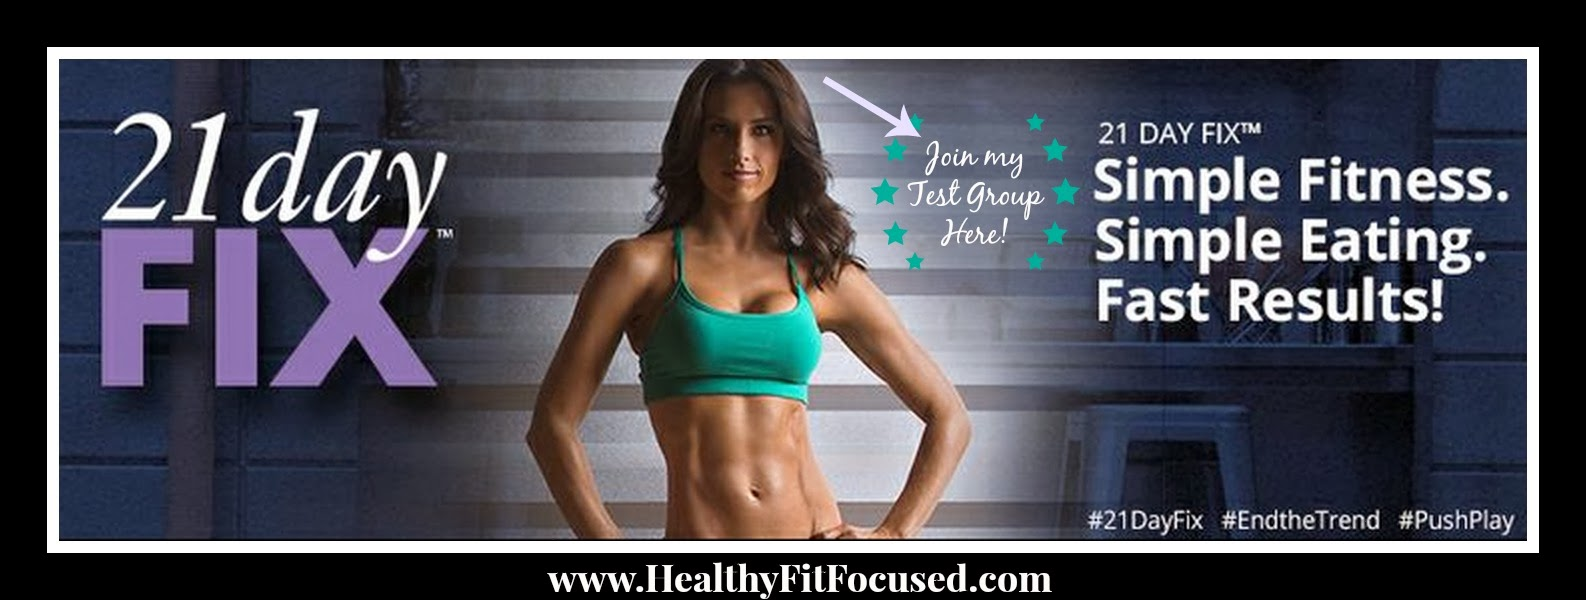 21 Day Fix, accountability group, motivation, support, lose weight, fall into fitness